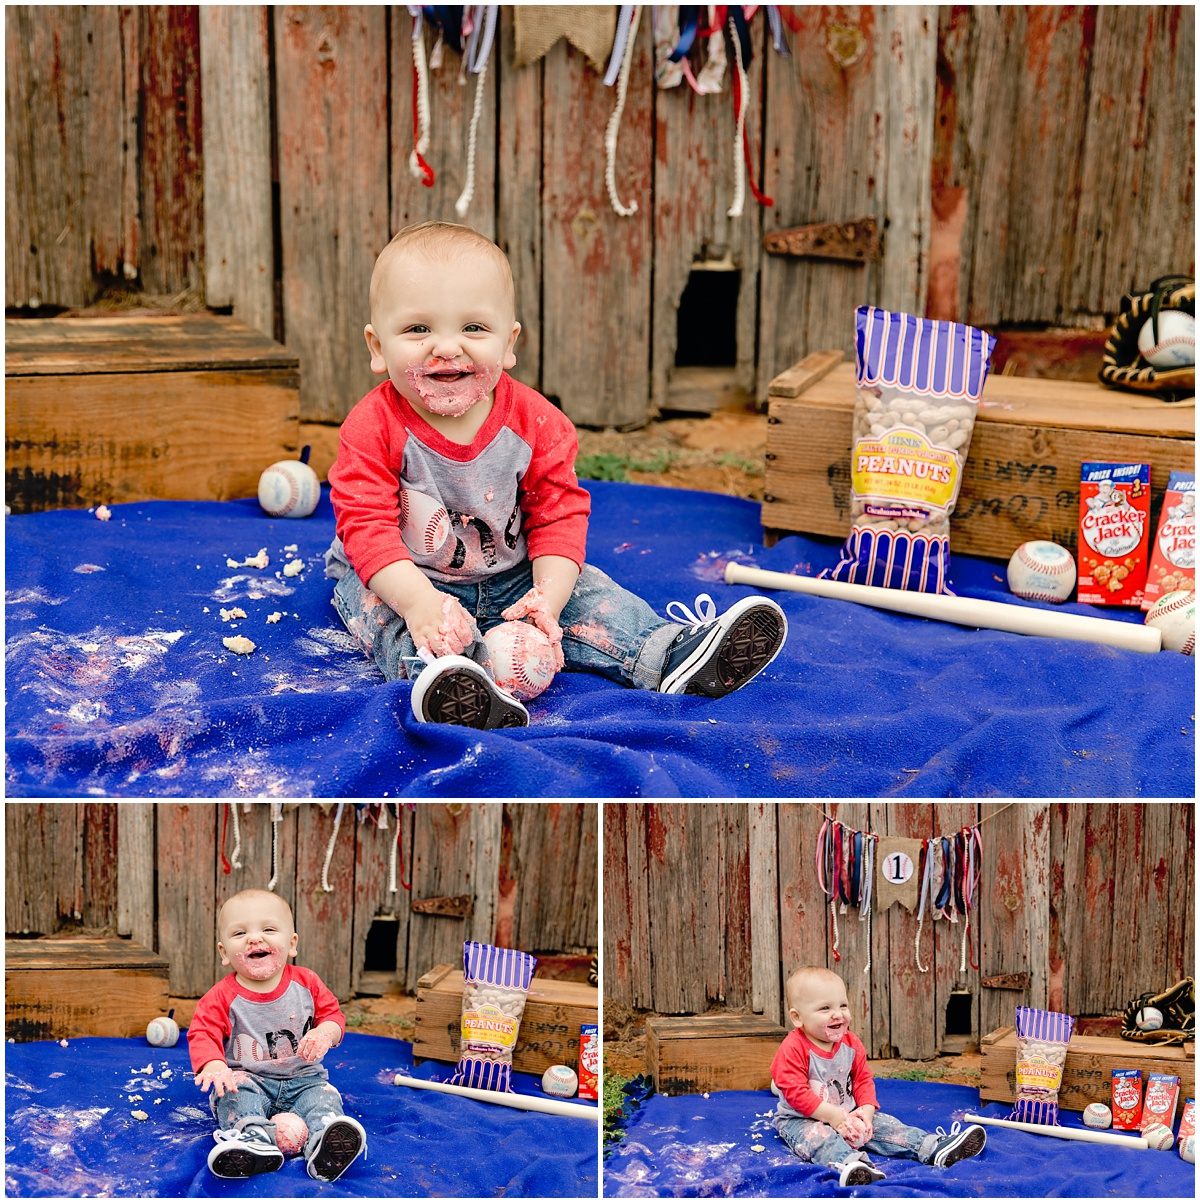 Cake-Smash-Baseball-Theme-First-Birthday-Carly-Barton-Photography_0002.jpg